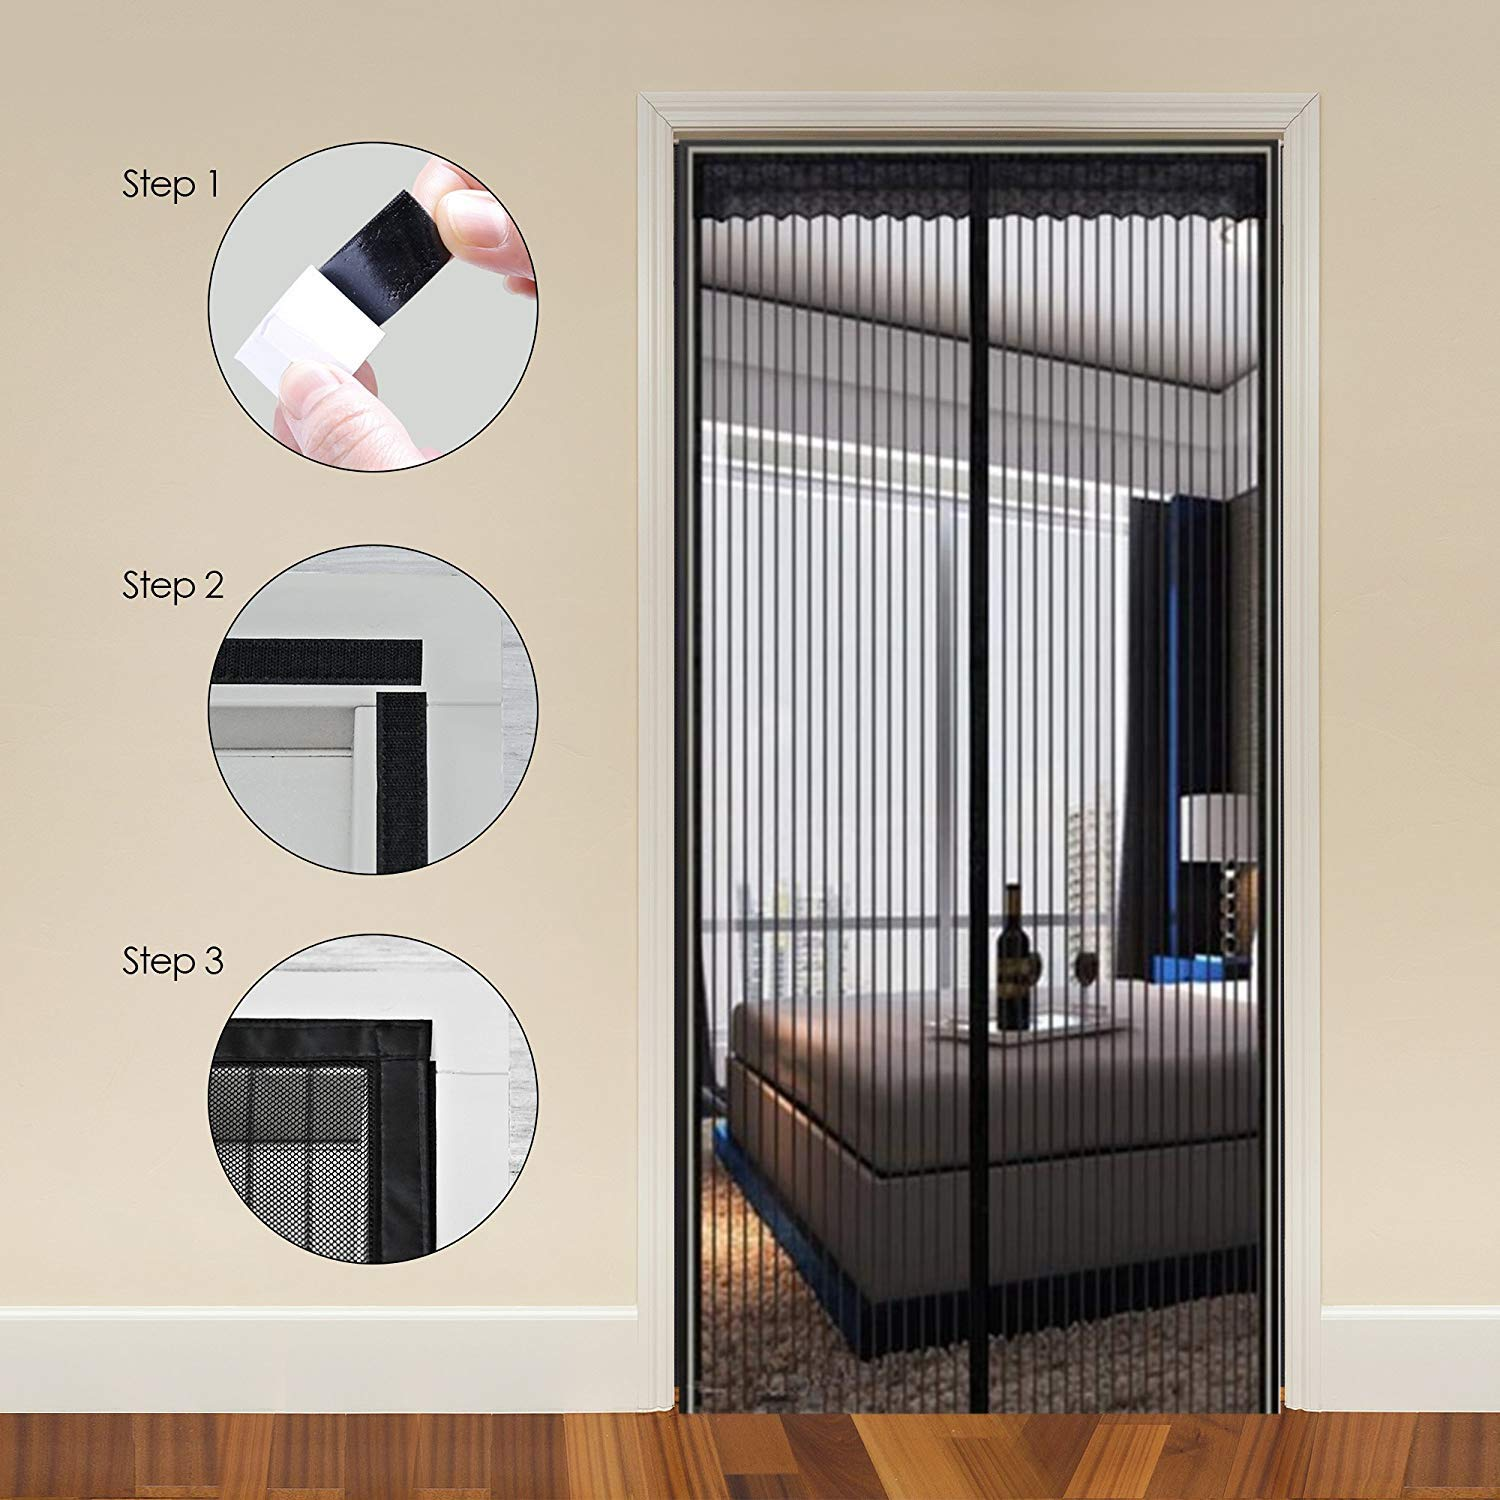 Easy Installation Without Drilling 34/×83in, Black Nvetls Magnetic Screen Door Fly Mosquito Insect Screens Mesh Curtain Fits Door